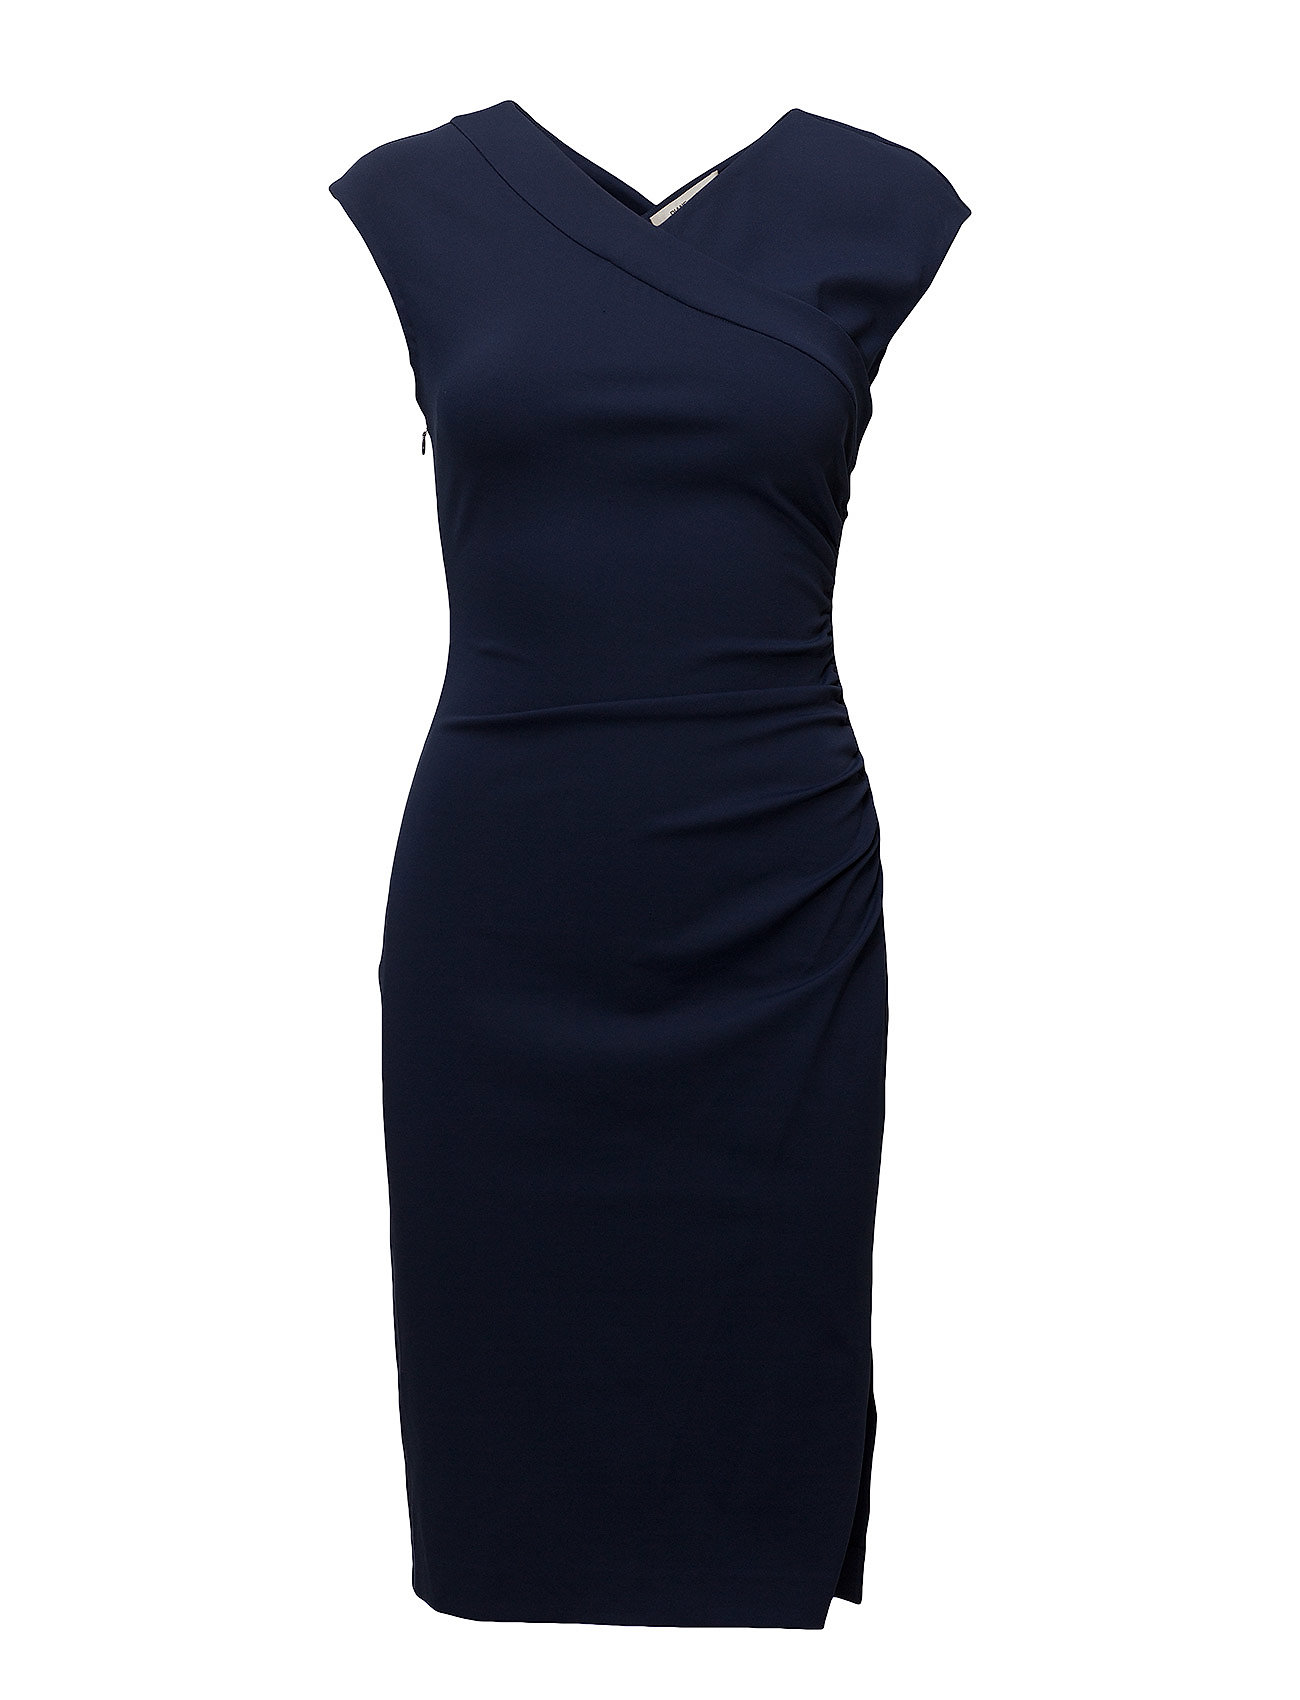 Image of Cap Slv Ruched Jersey Dress (3052621063)